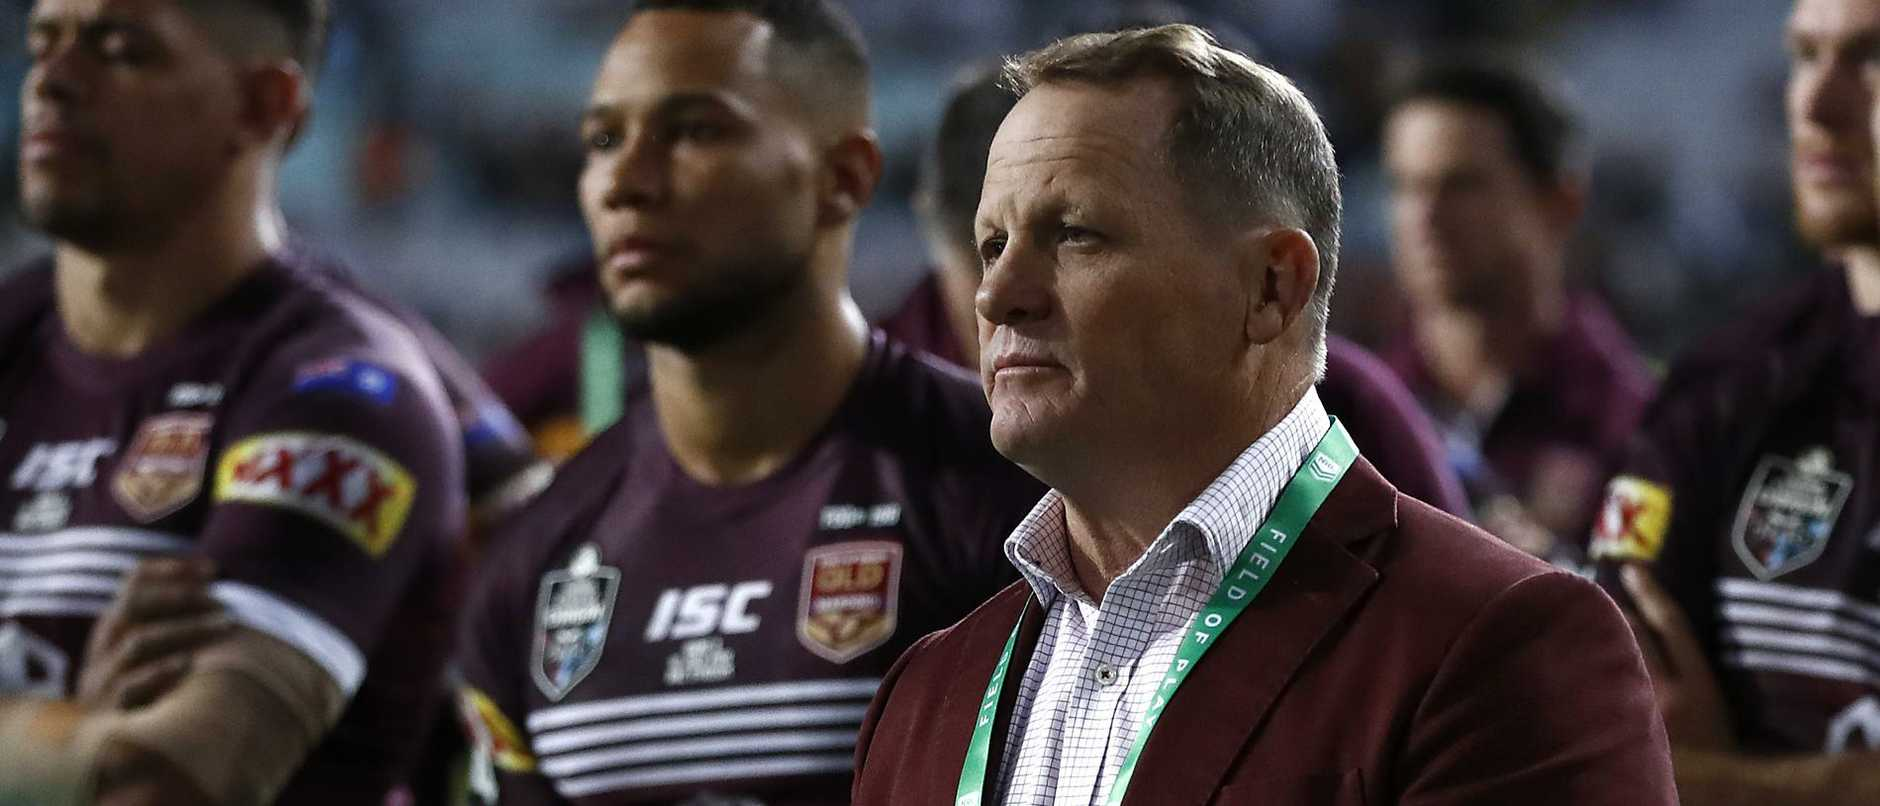 Kevin Walters continues to be linked to the Gold Coast Titans job. Picture: Ryan Pierse/Getty Images